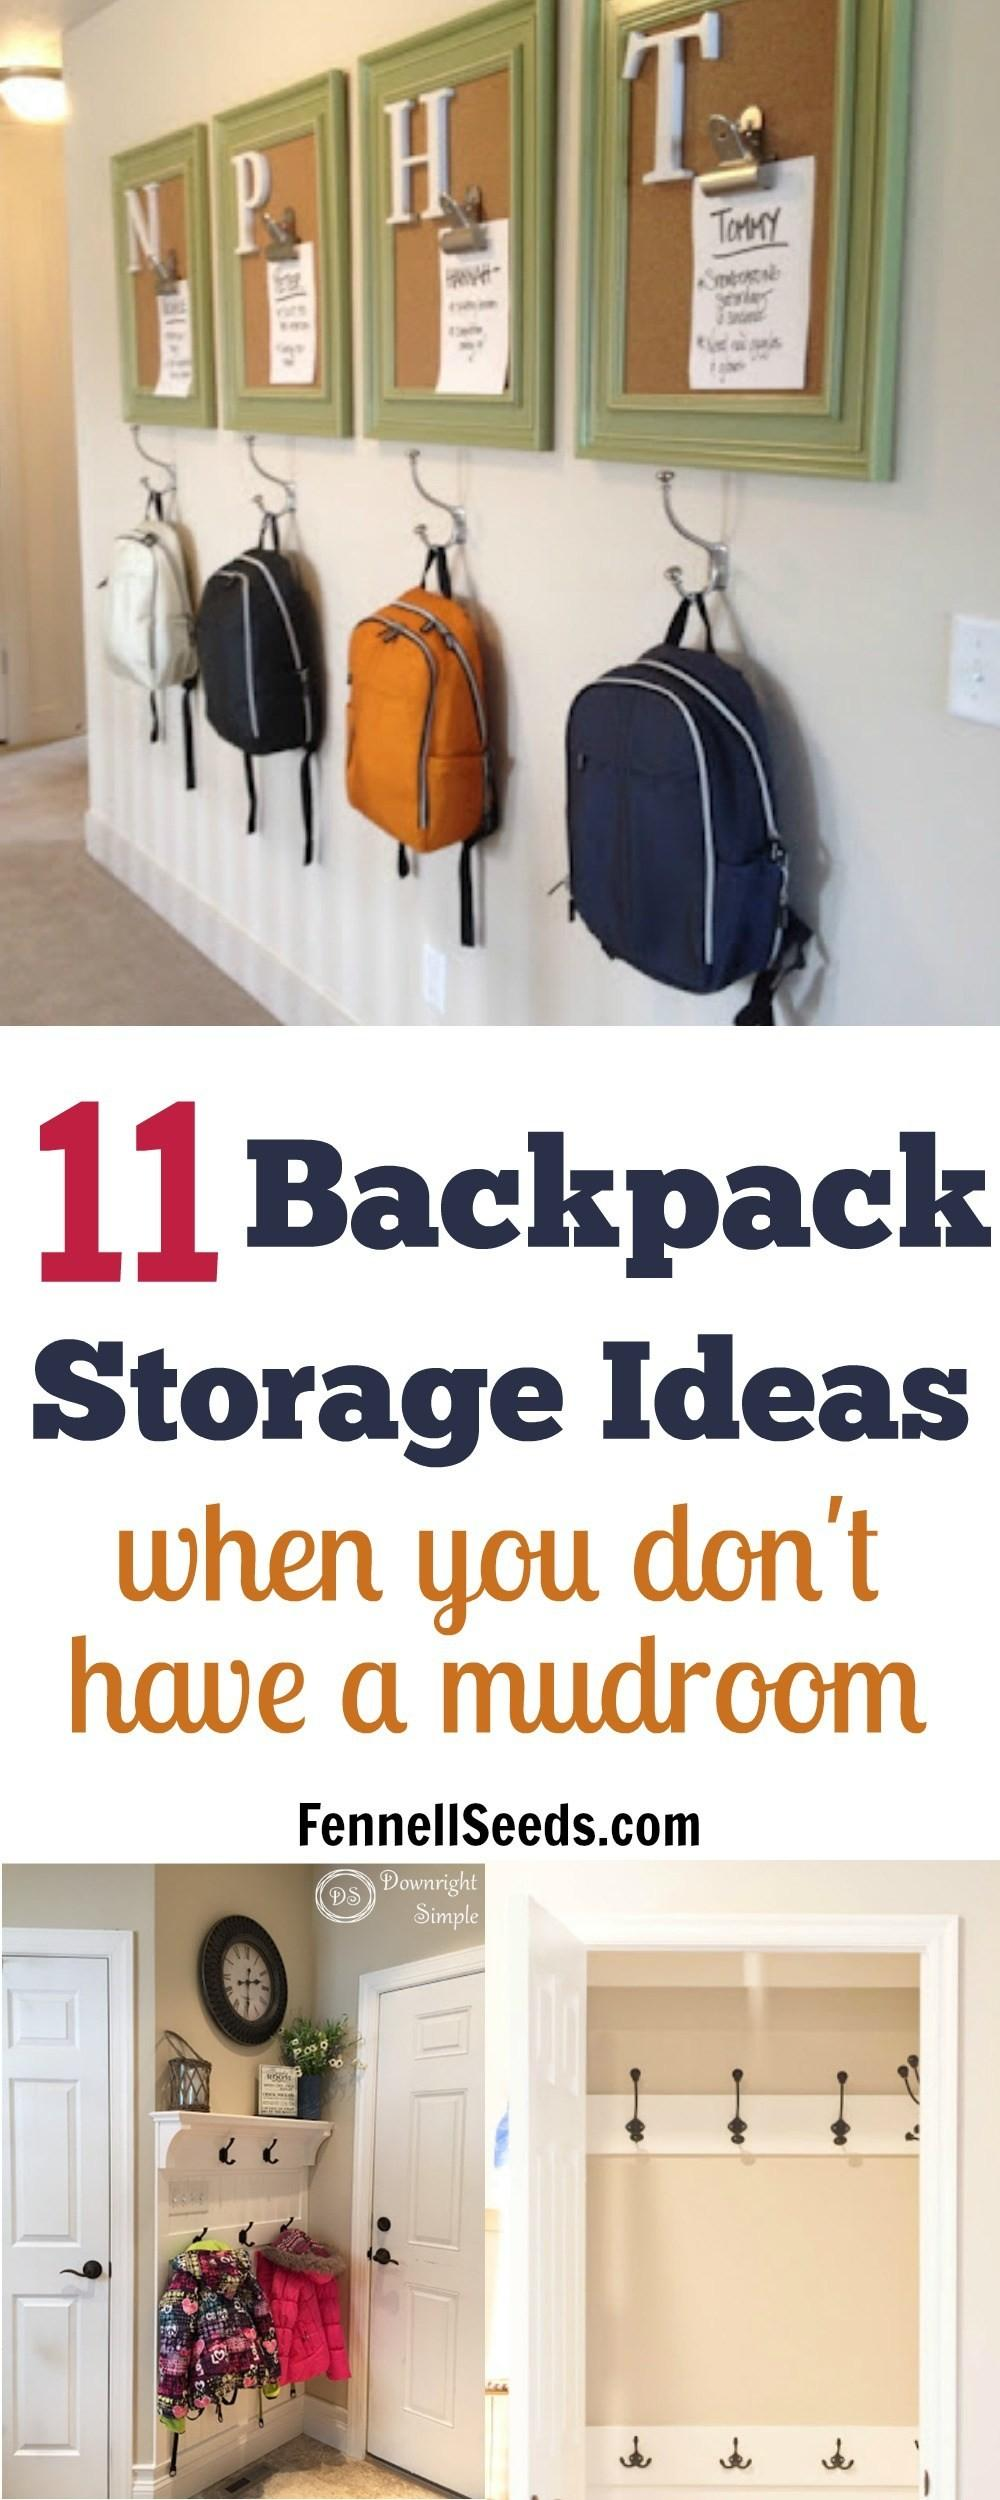 Backpack Storage Ideas Don Have Mudroom